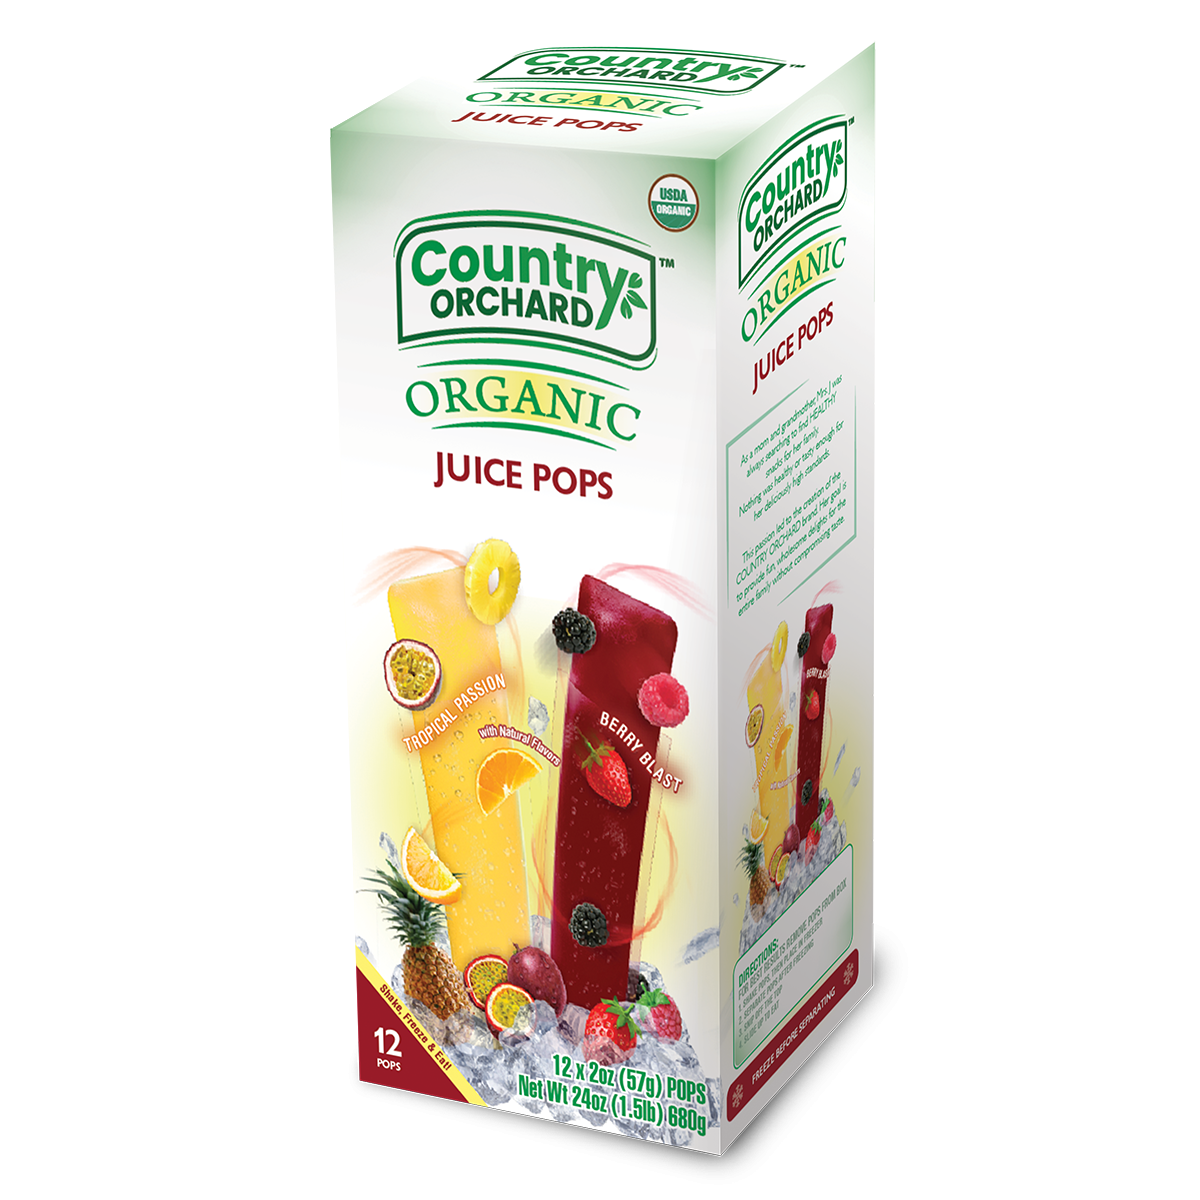 Country Orchard Organic Juice Pops